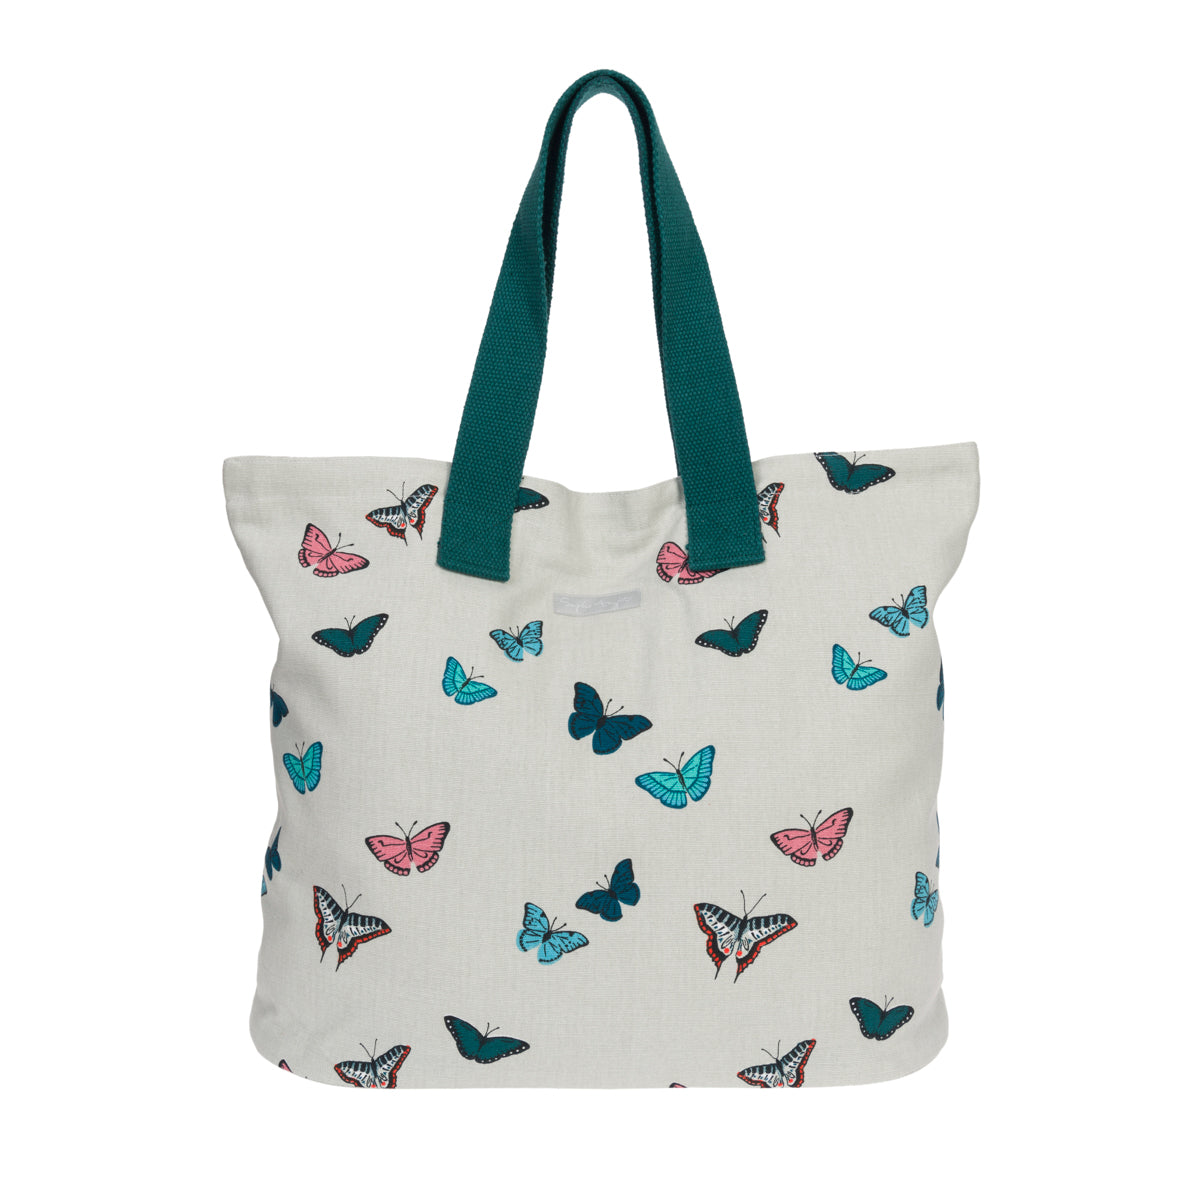 Butterflies Bag by Sophie Allport